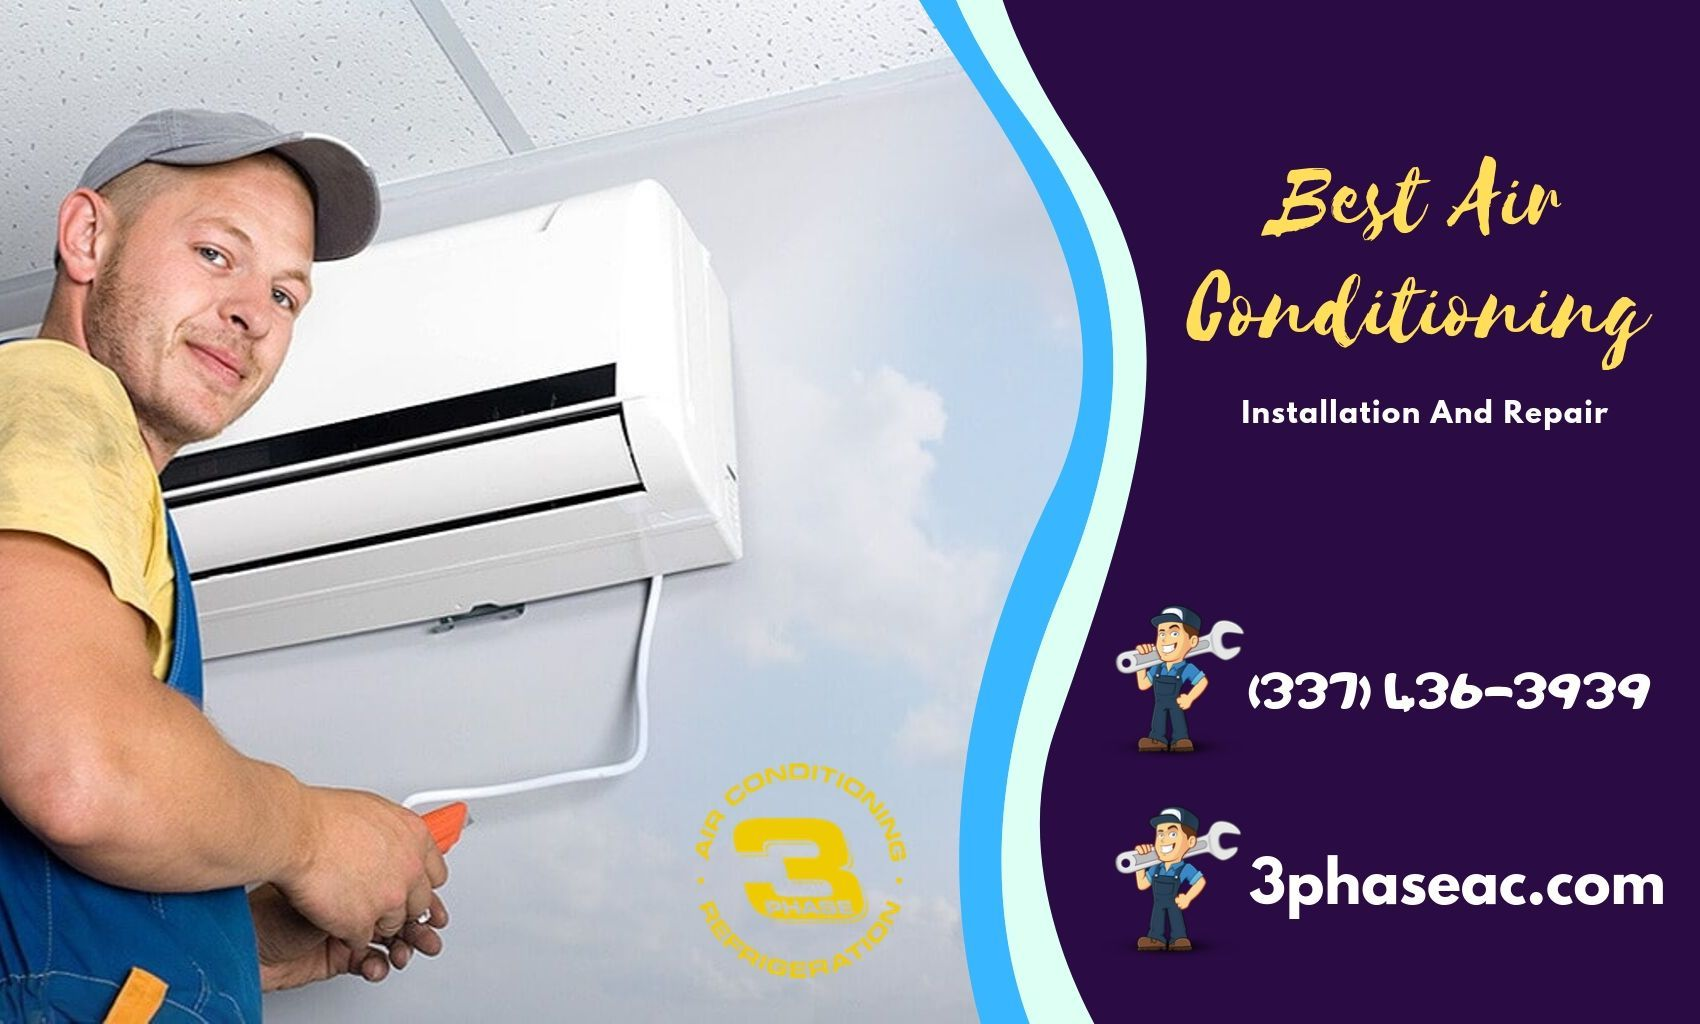 We Offer 100 Guaranteed Air Conditioning Installation And Repair